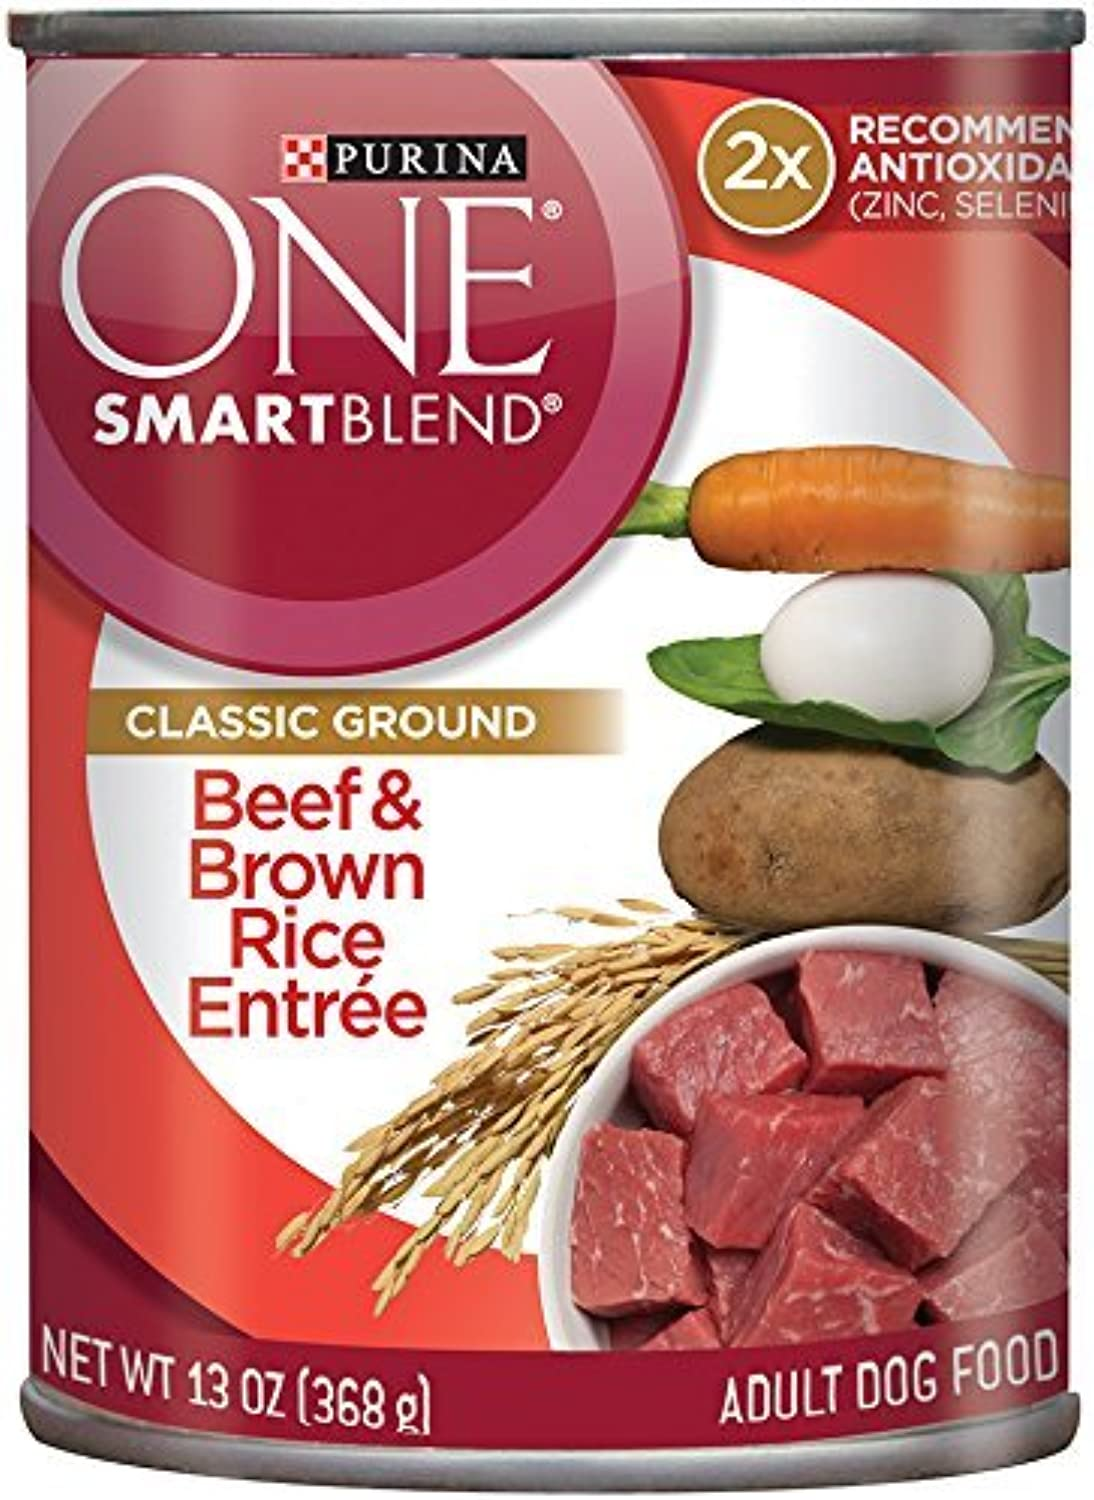 Purina One Smart Blend Classic Ground Canned Dog Food  Beef & Brown Rice Entree 13 oz. (Pack of 2)